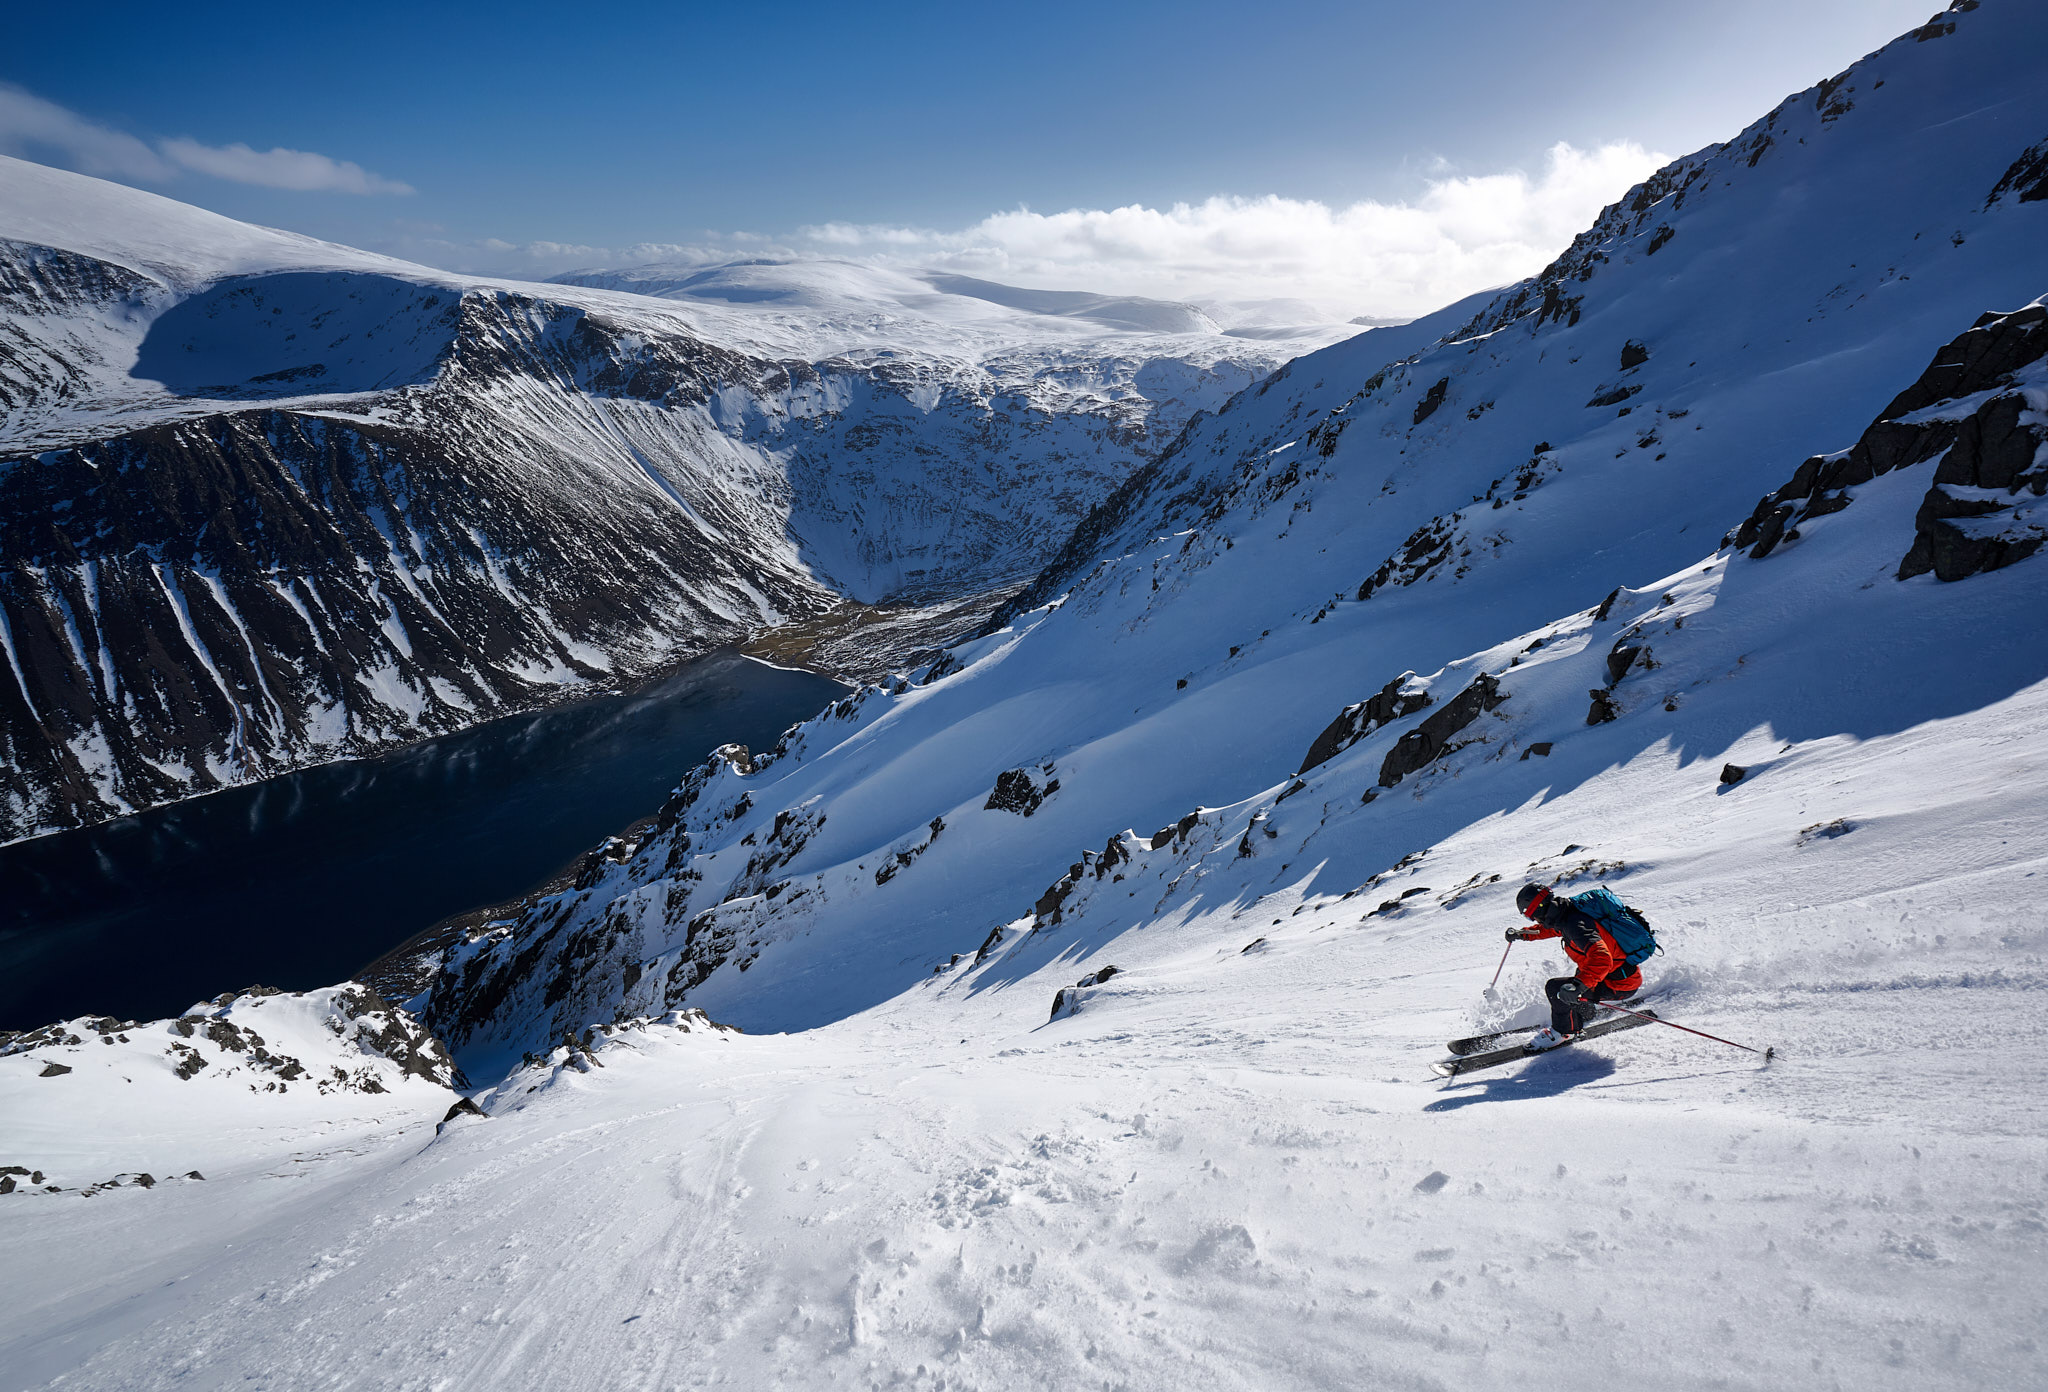 Philip Ebert skiing one of the many incredible gully lines on Sgòr Gaoith